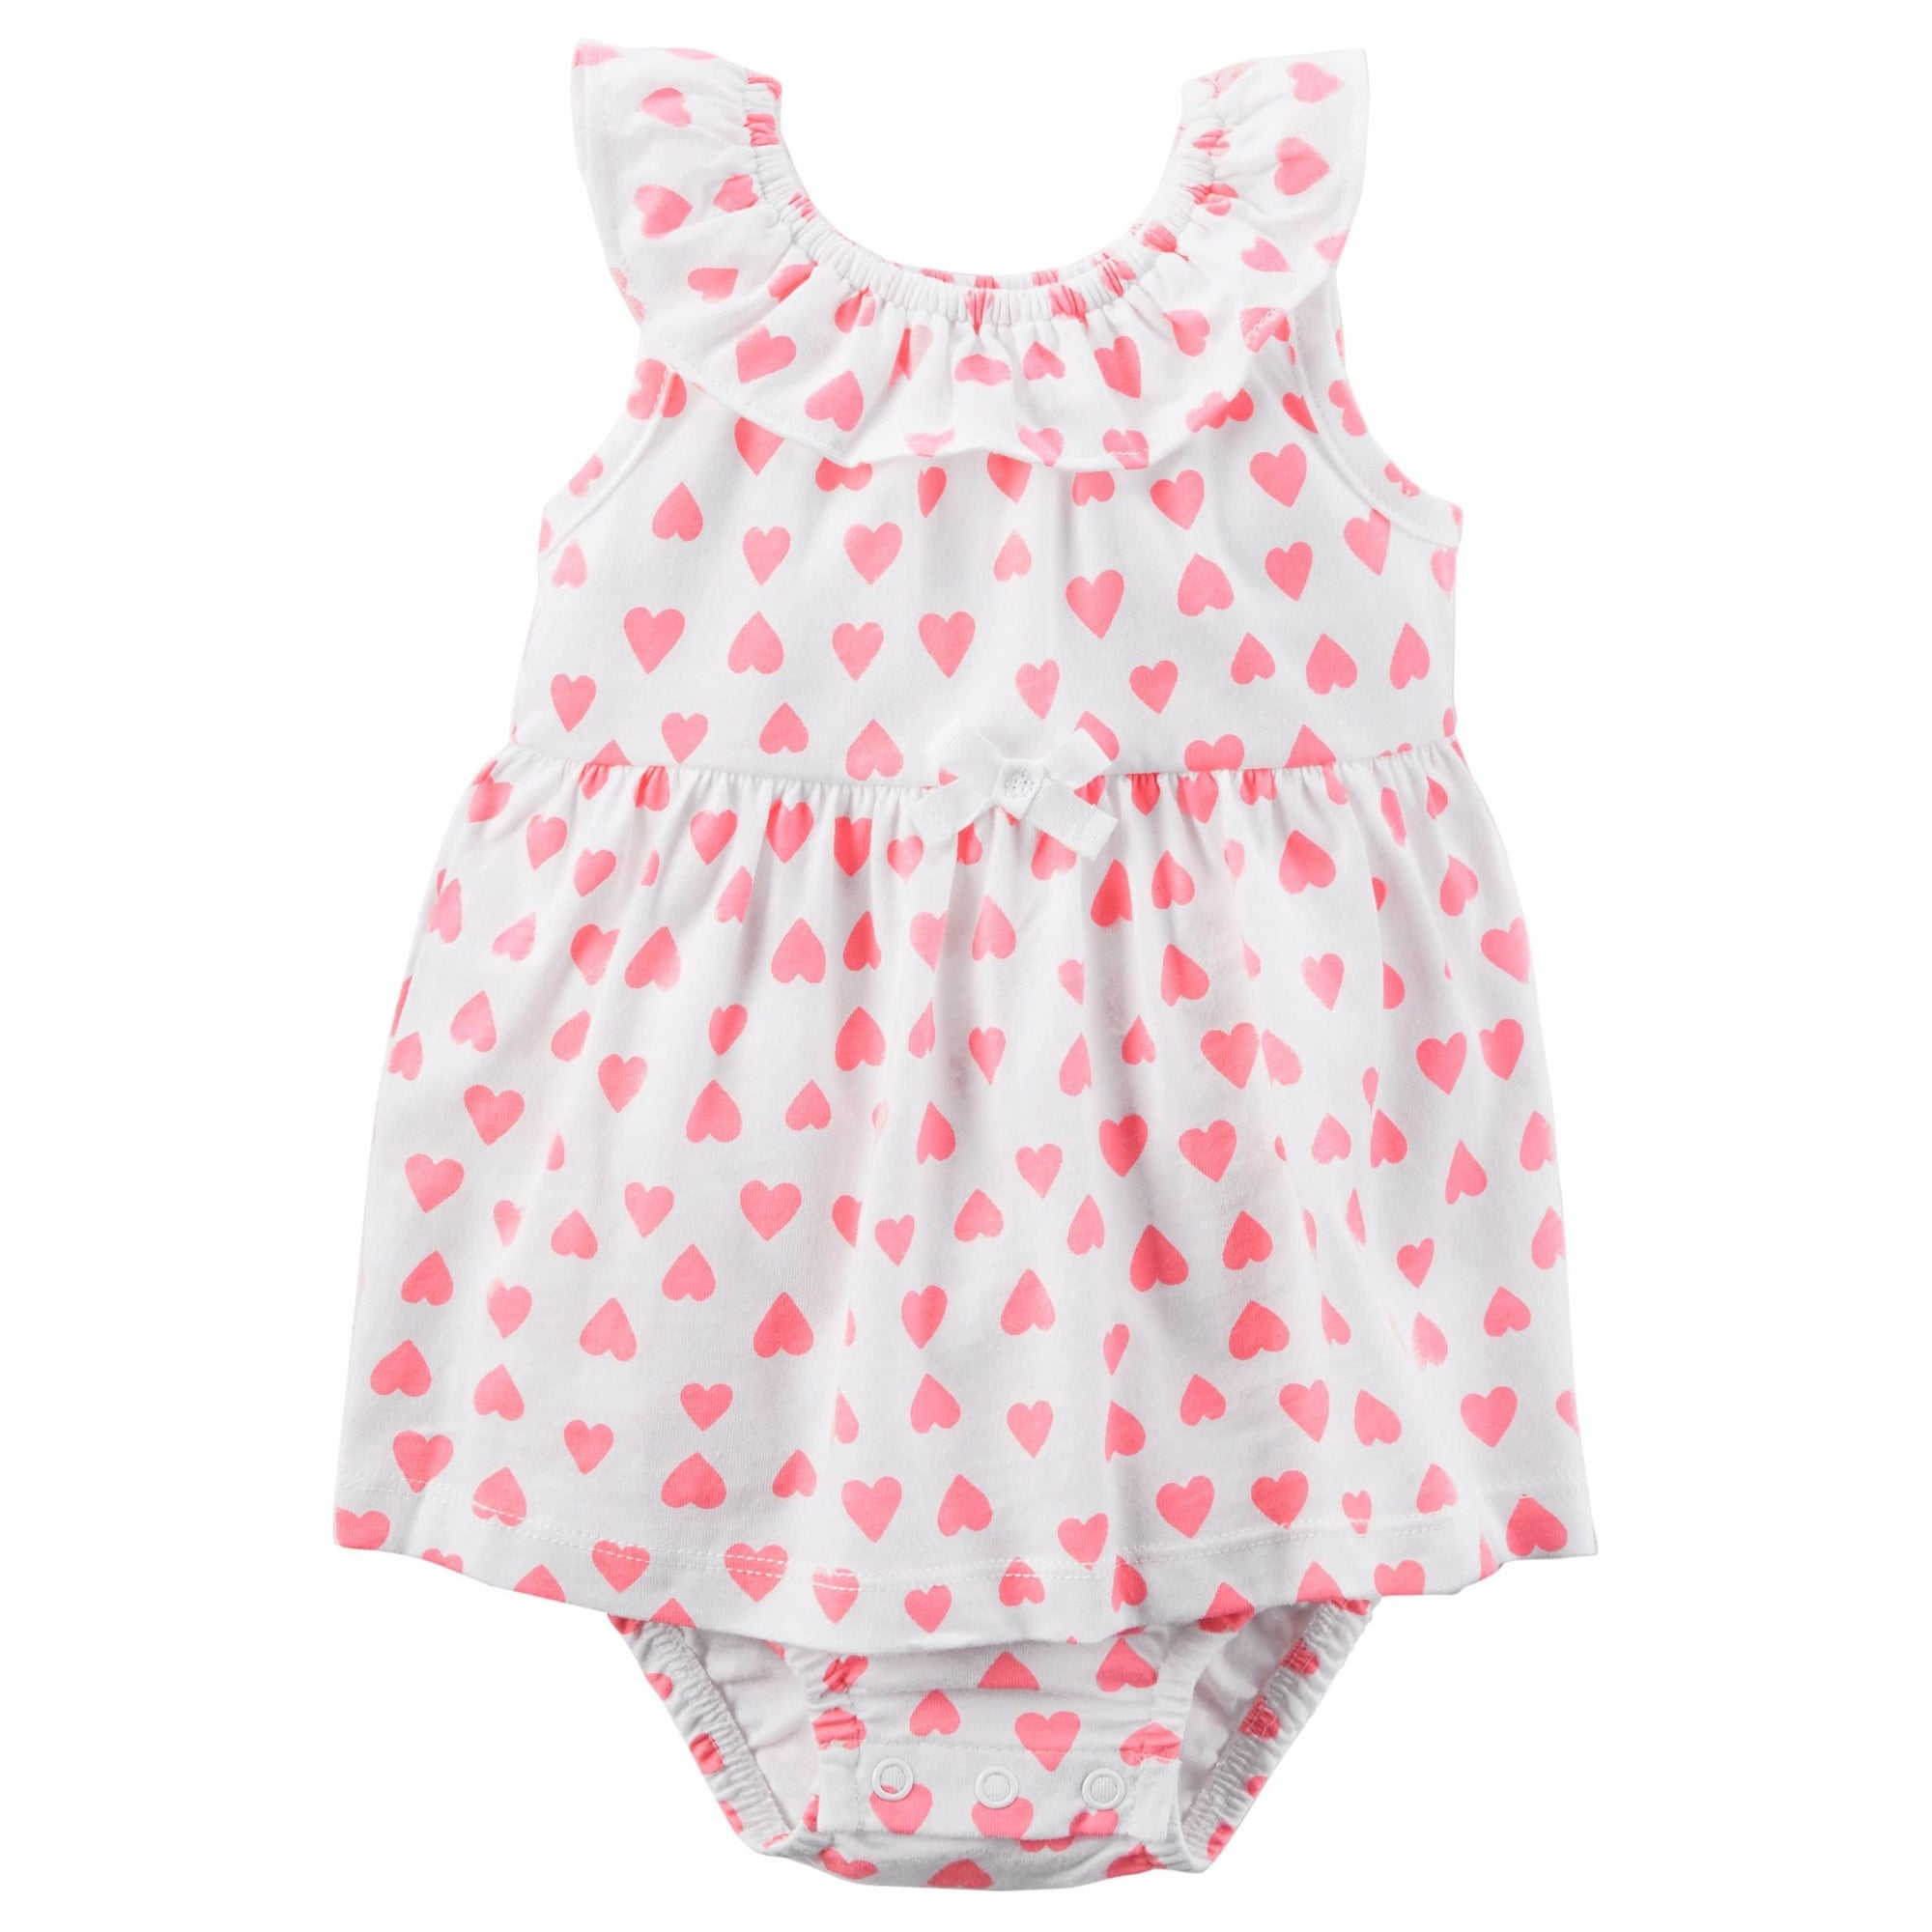 4a7f49a7c Baby Clothing